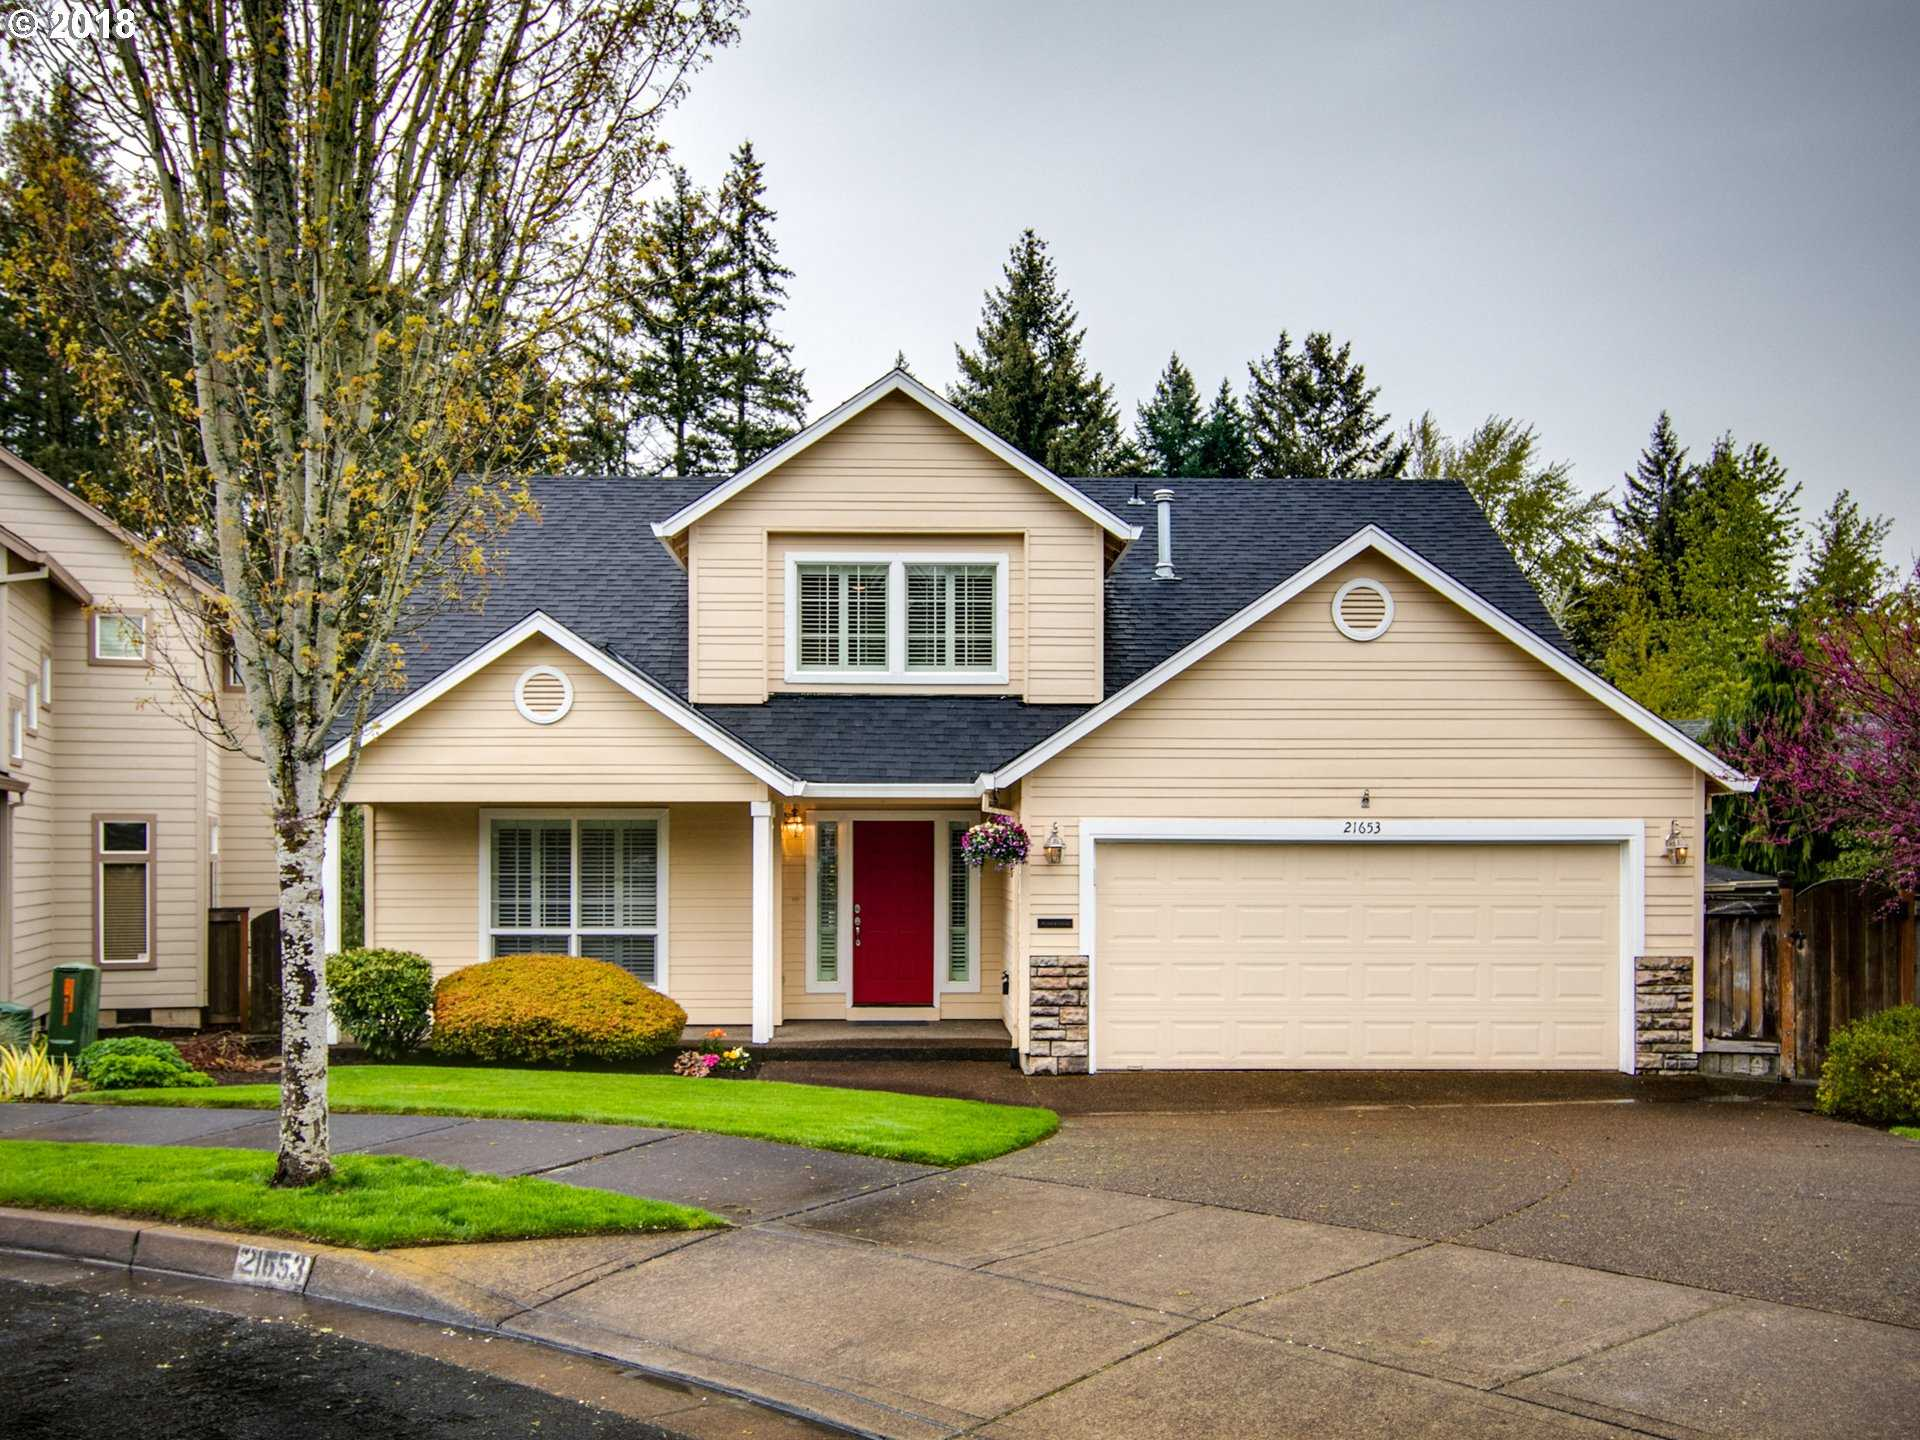 $489,900 - 3Br/3Ba -  for Sale in Tualatin